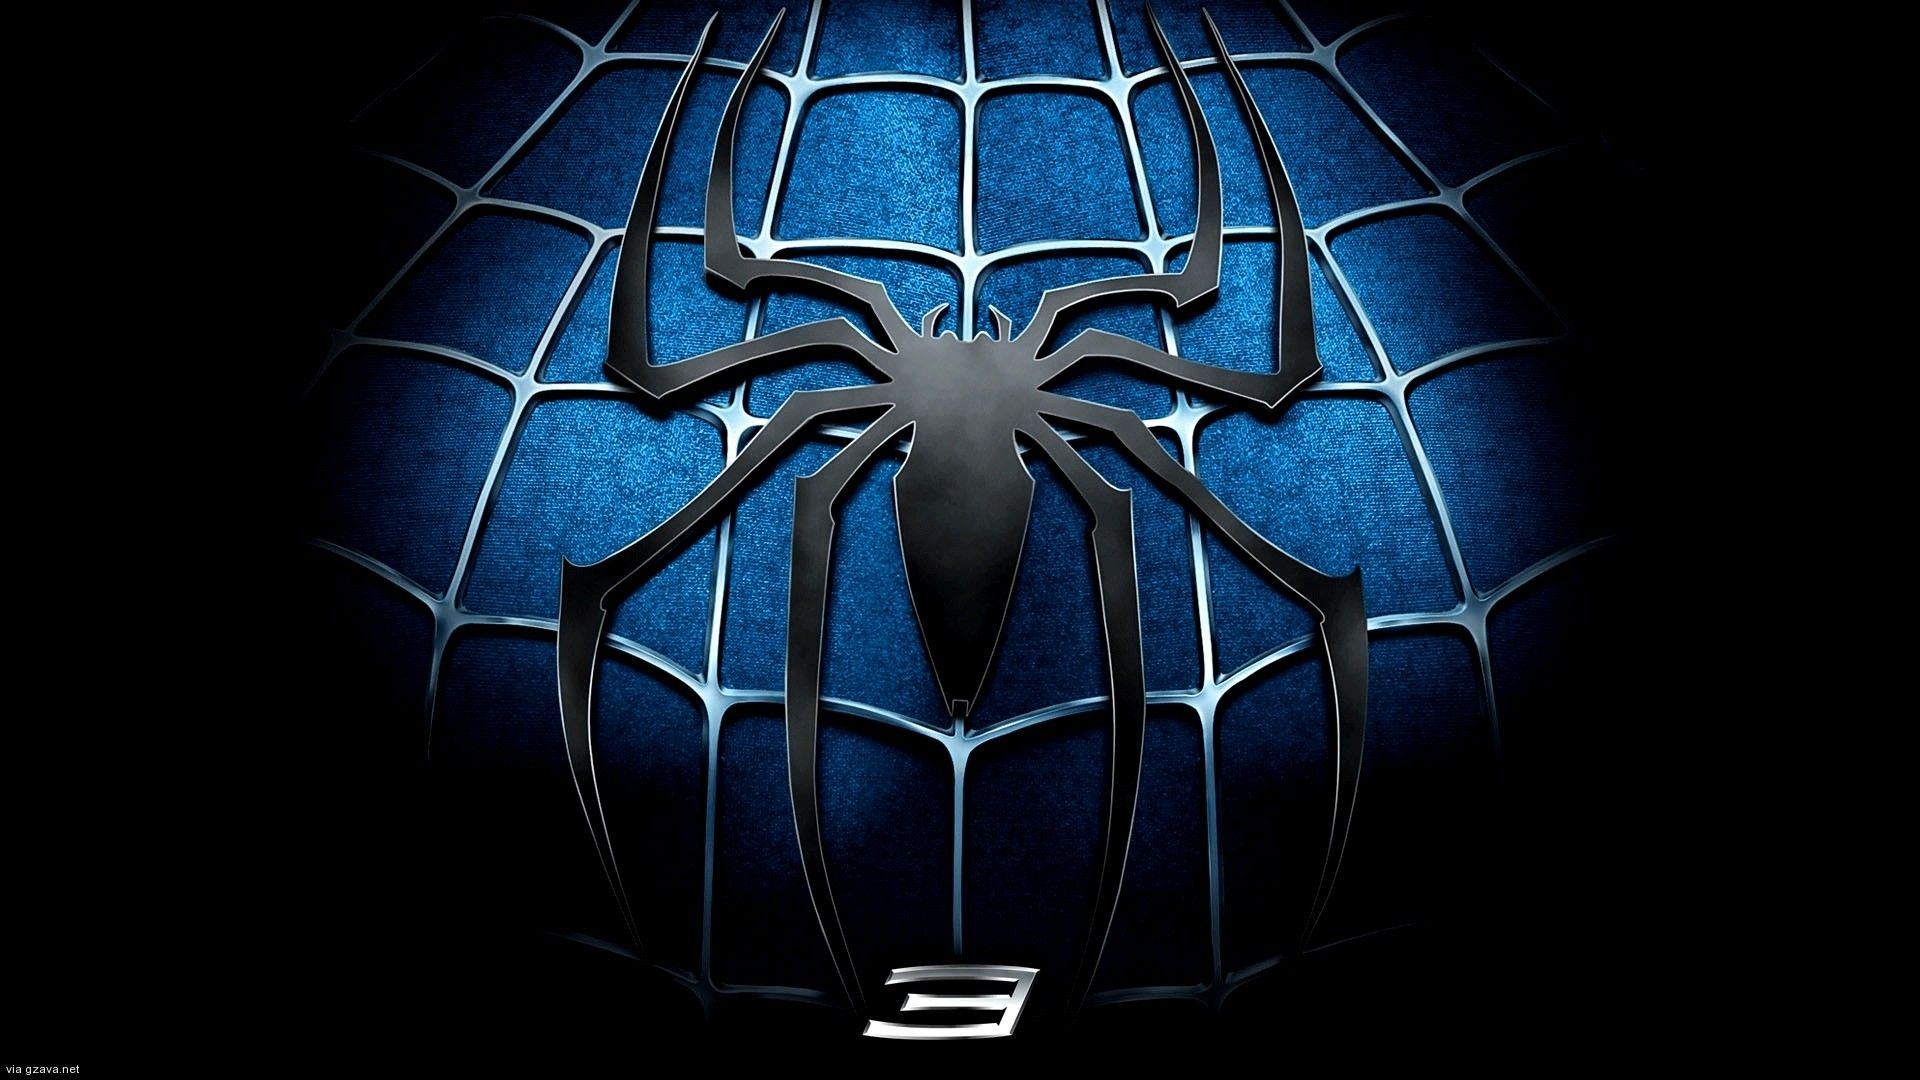 Spiderman 3 Download Wallpaper Logo Spiderman 3 Wallpaper Black Spiderman Spiderman Pictures